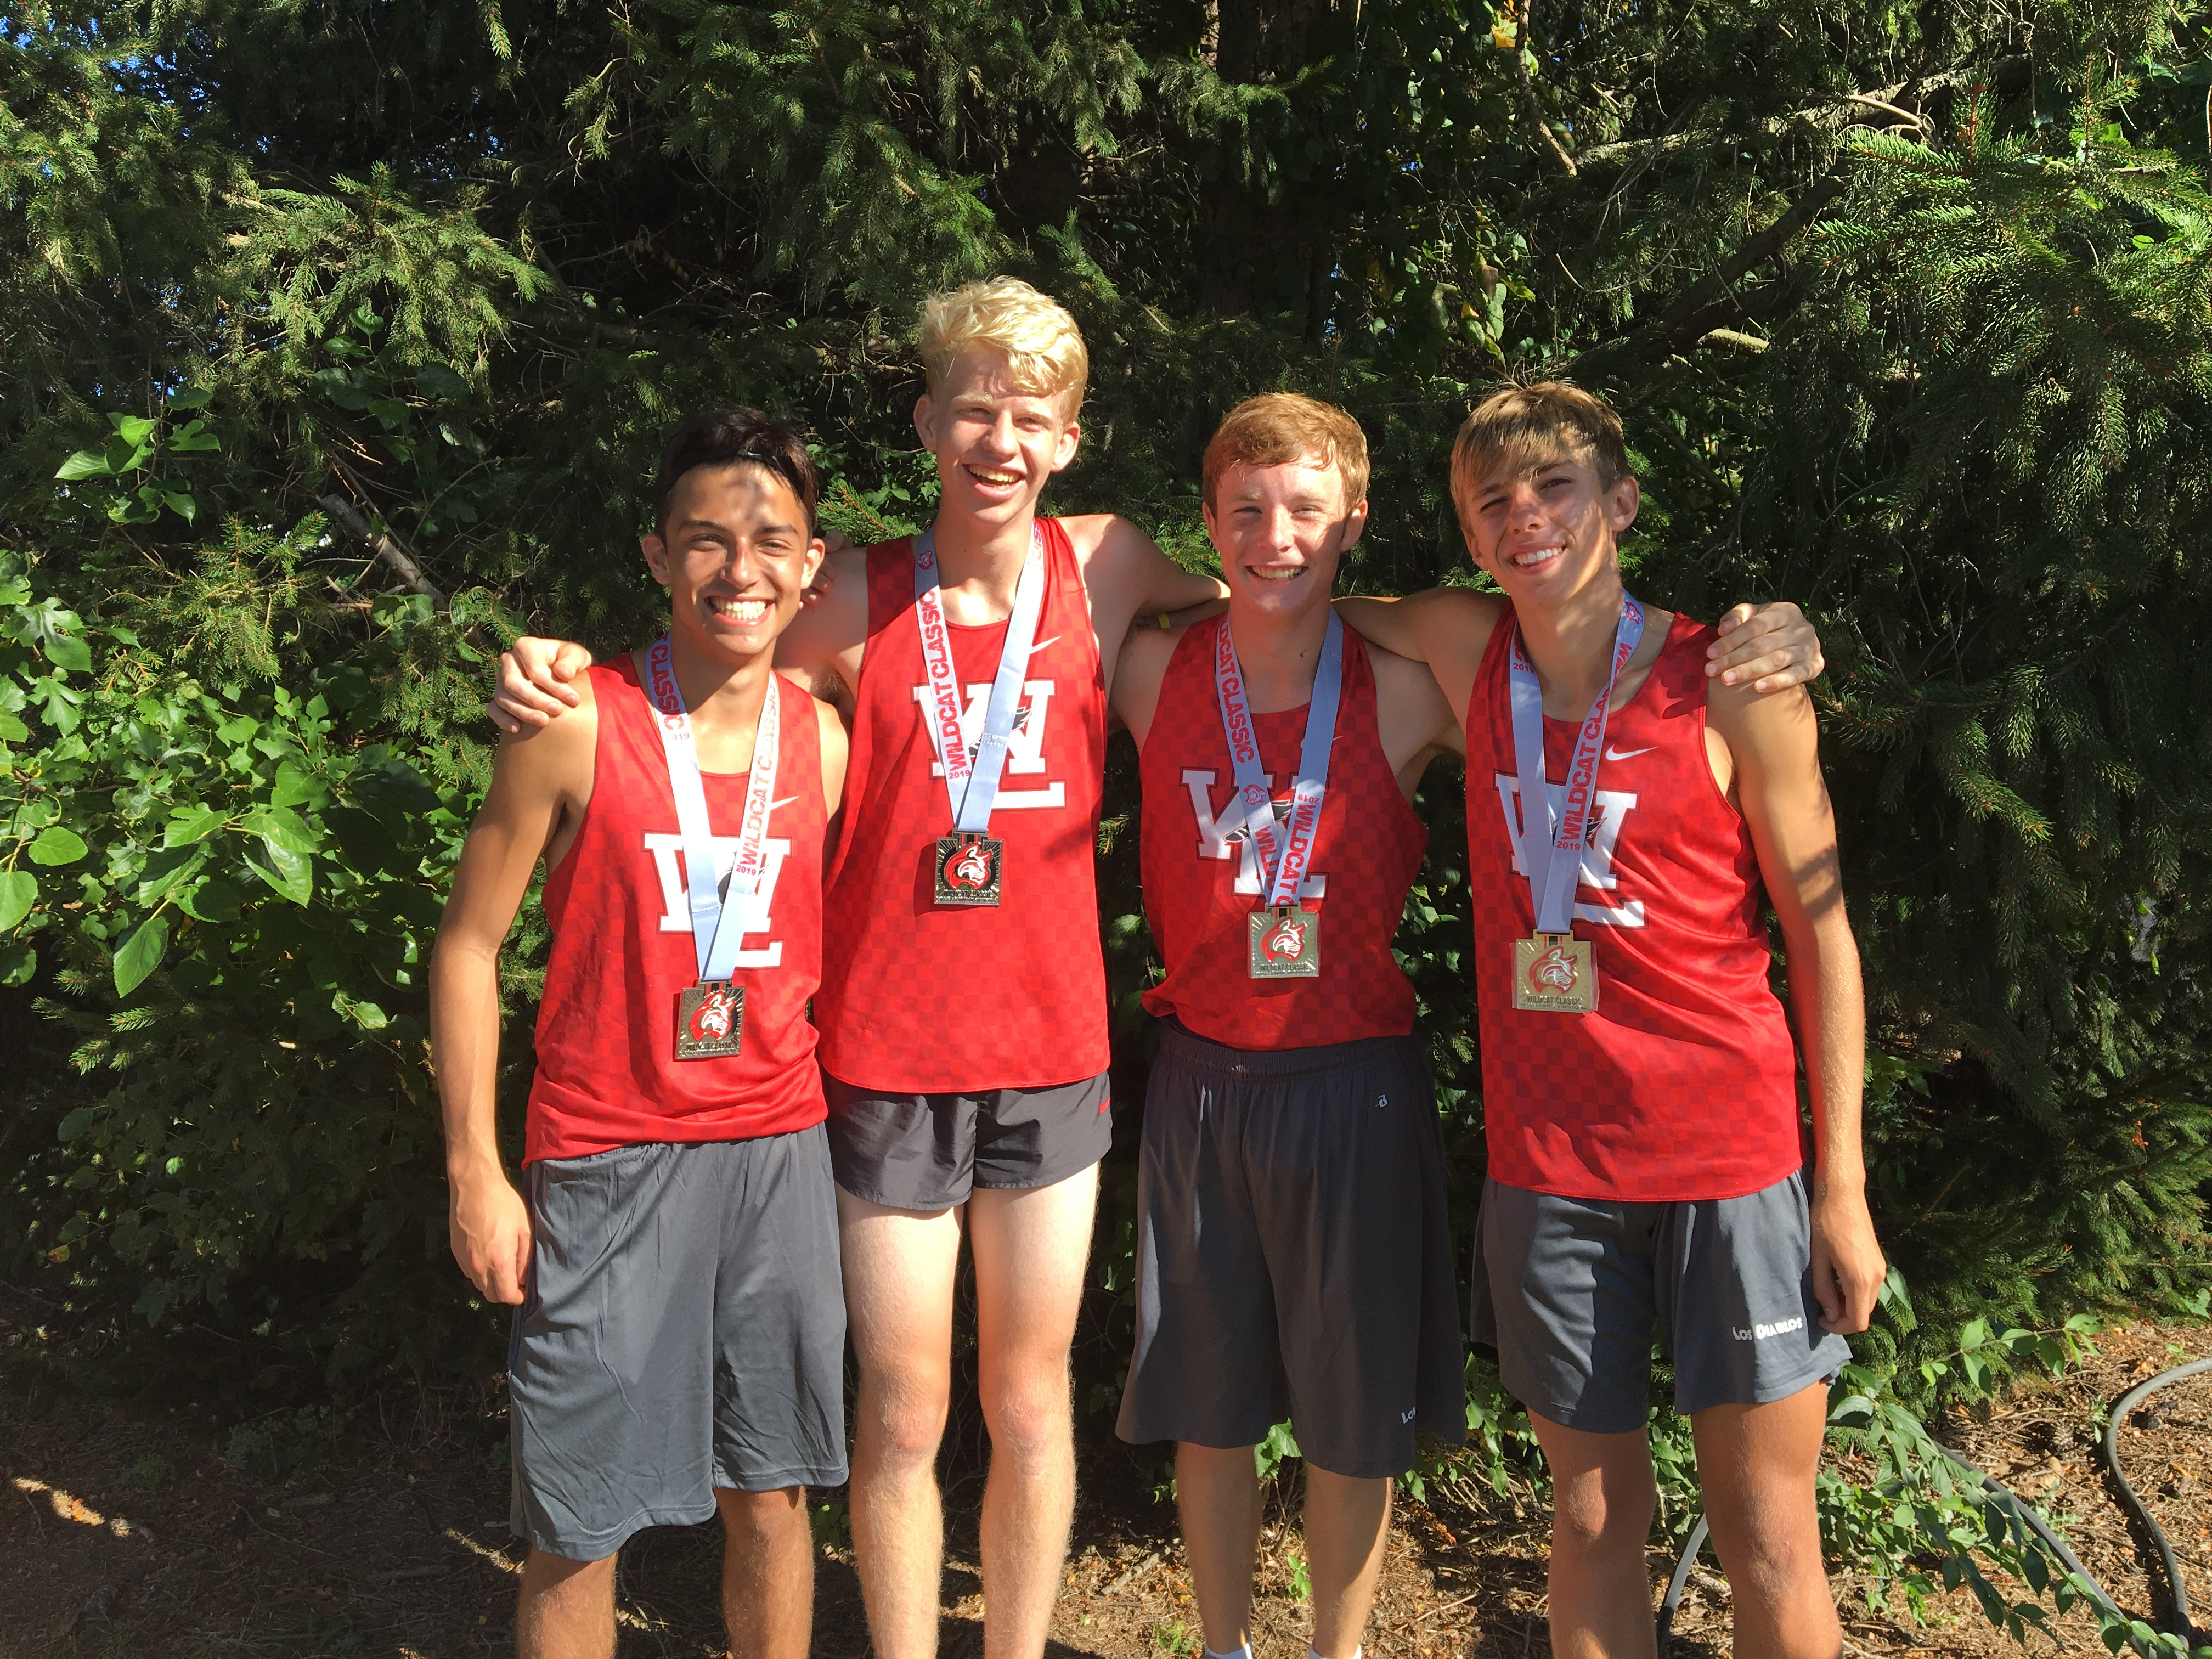 Boys earn sixth place finish at competitive Wildcat Classic